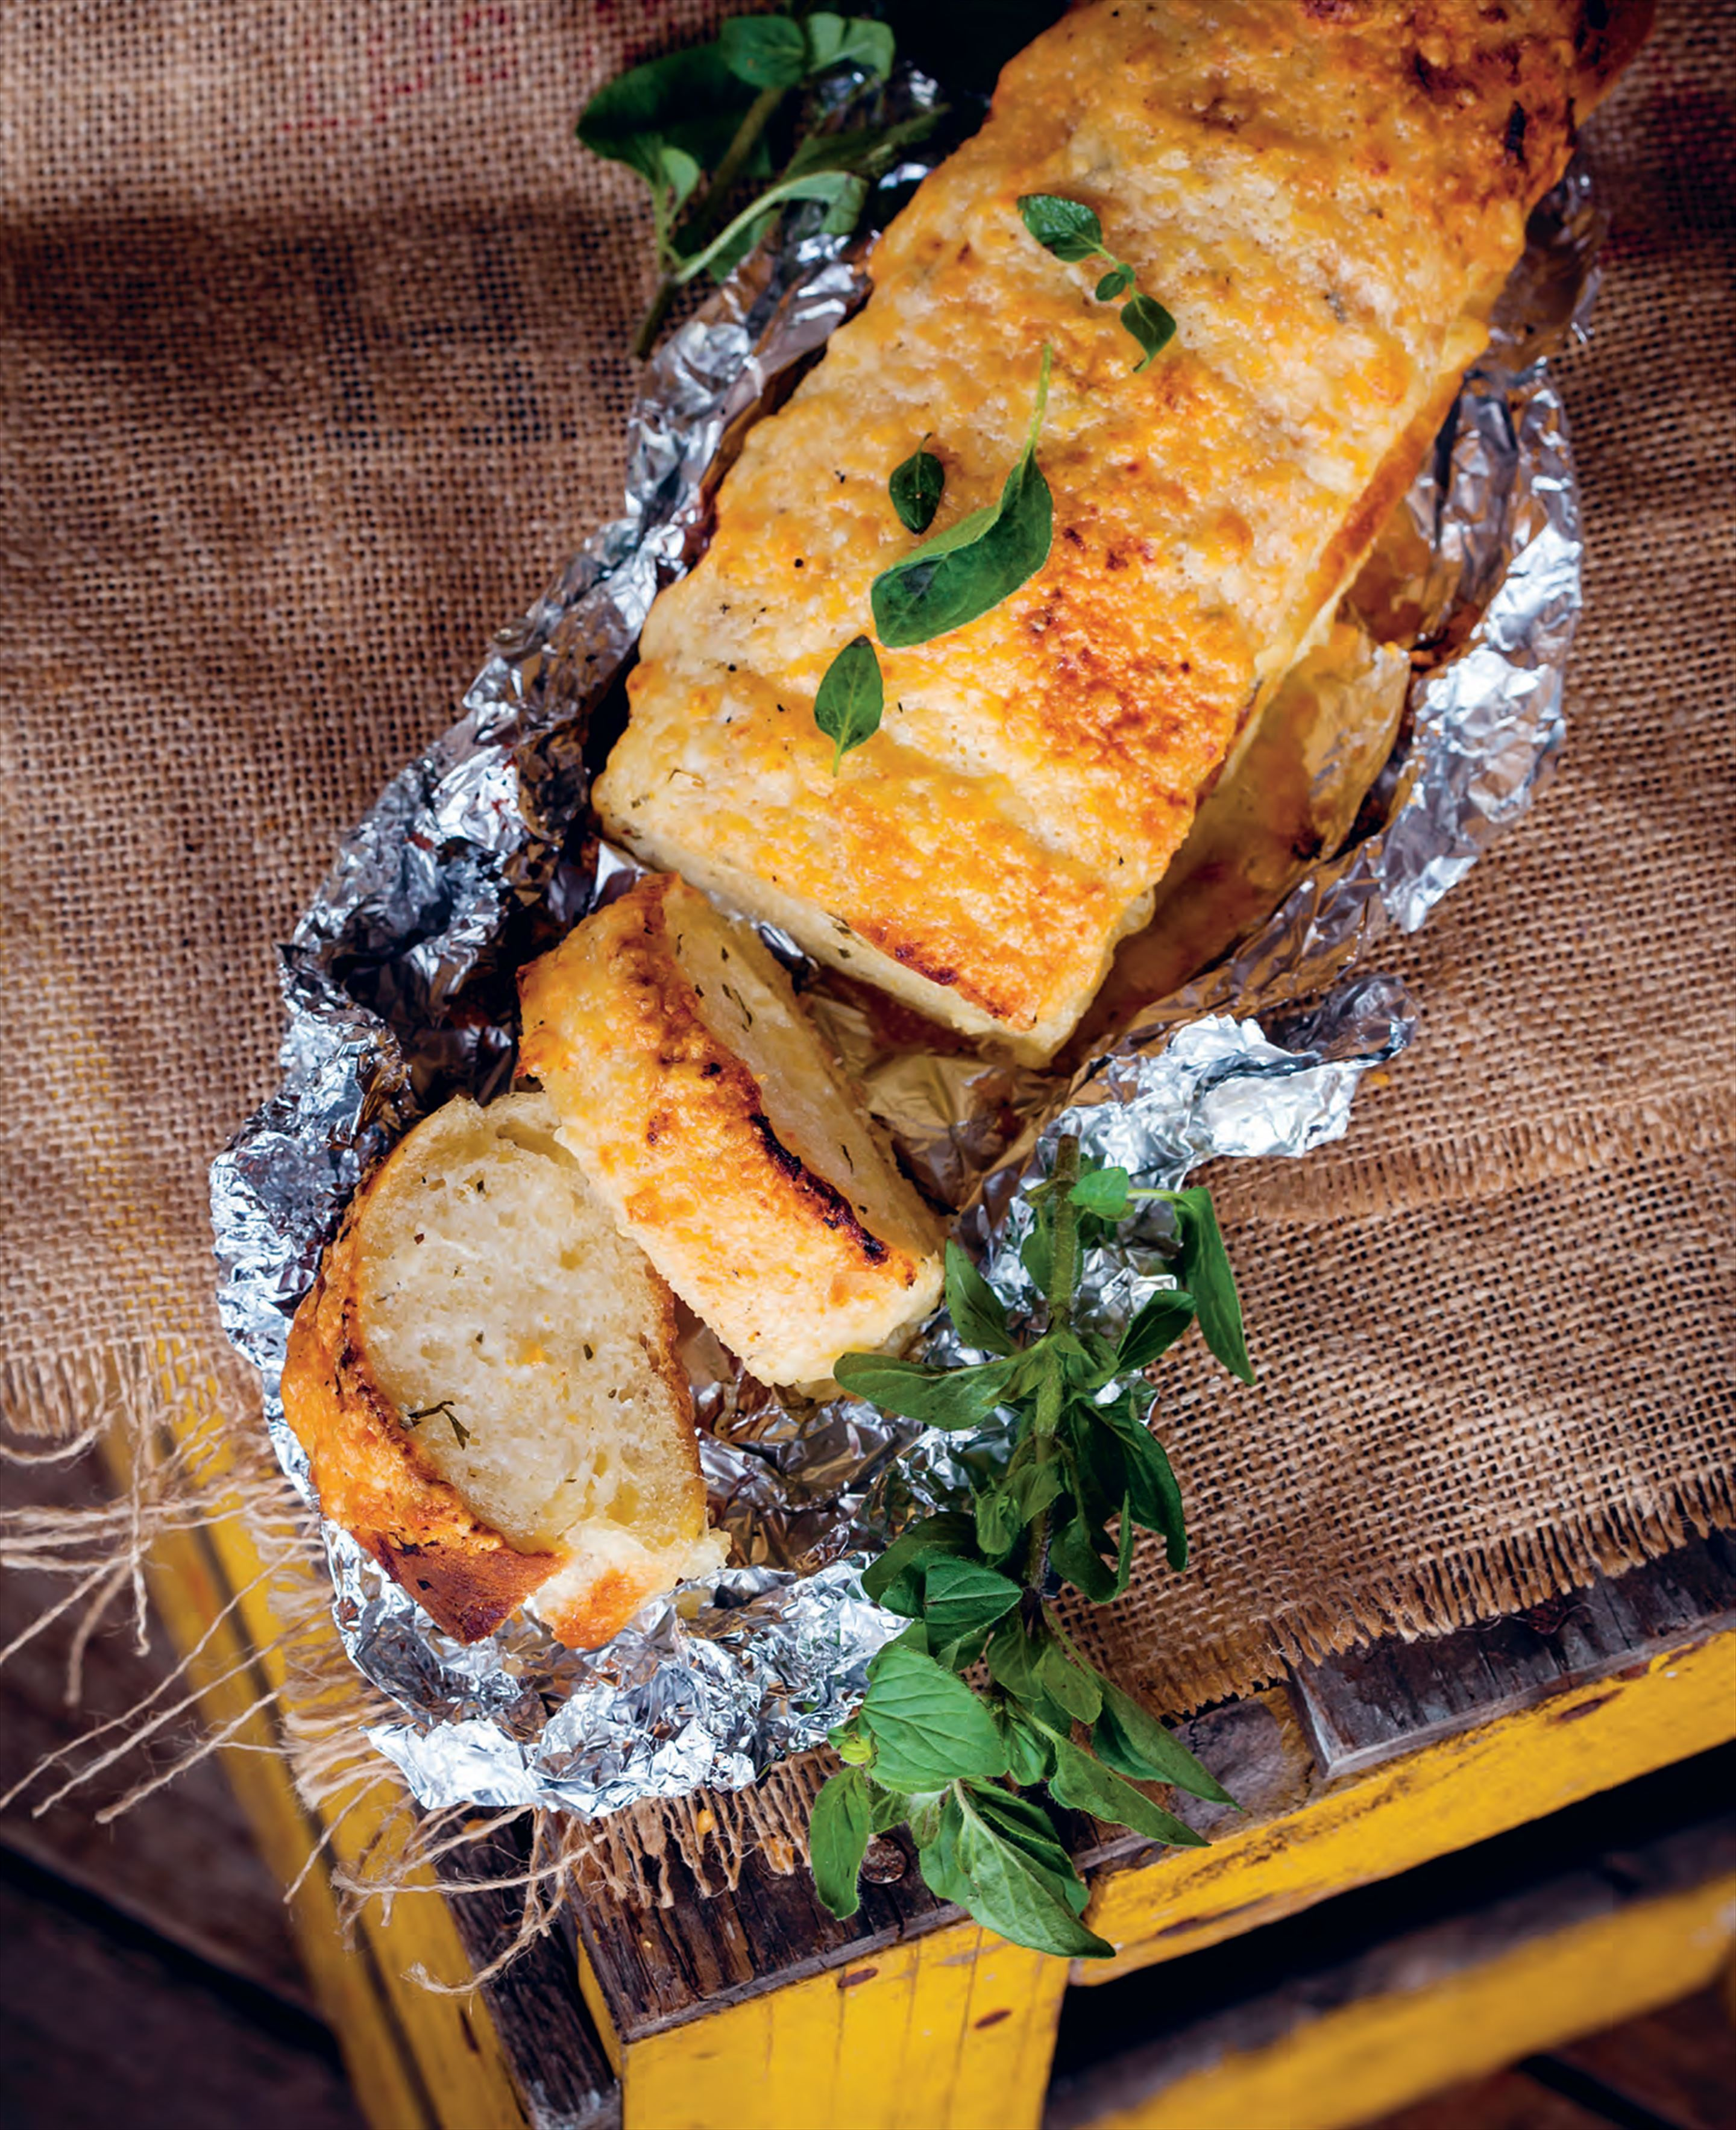 Brazilian garlic bread